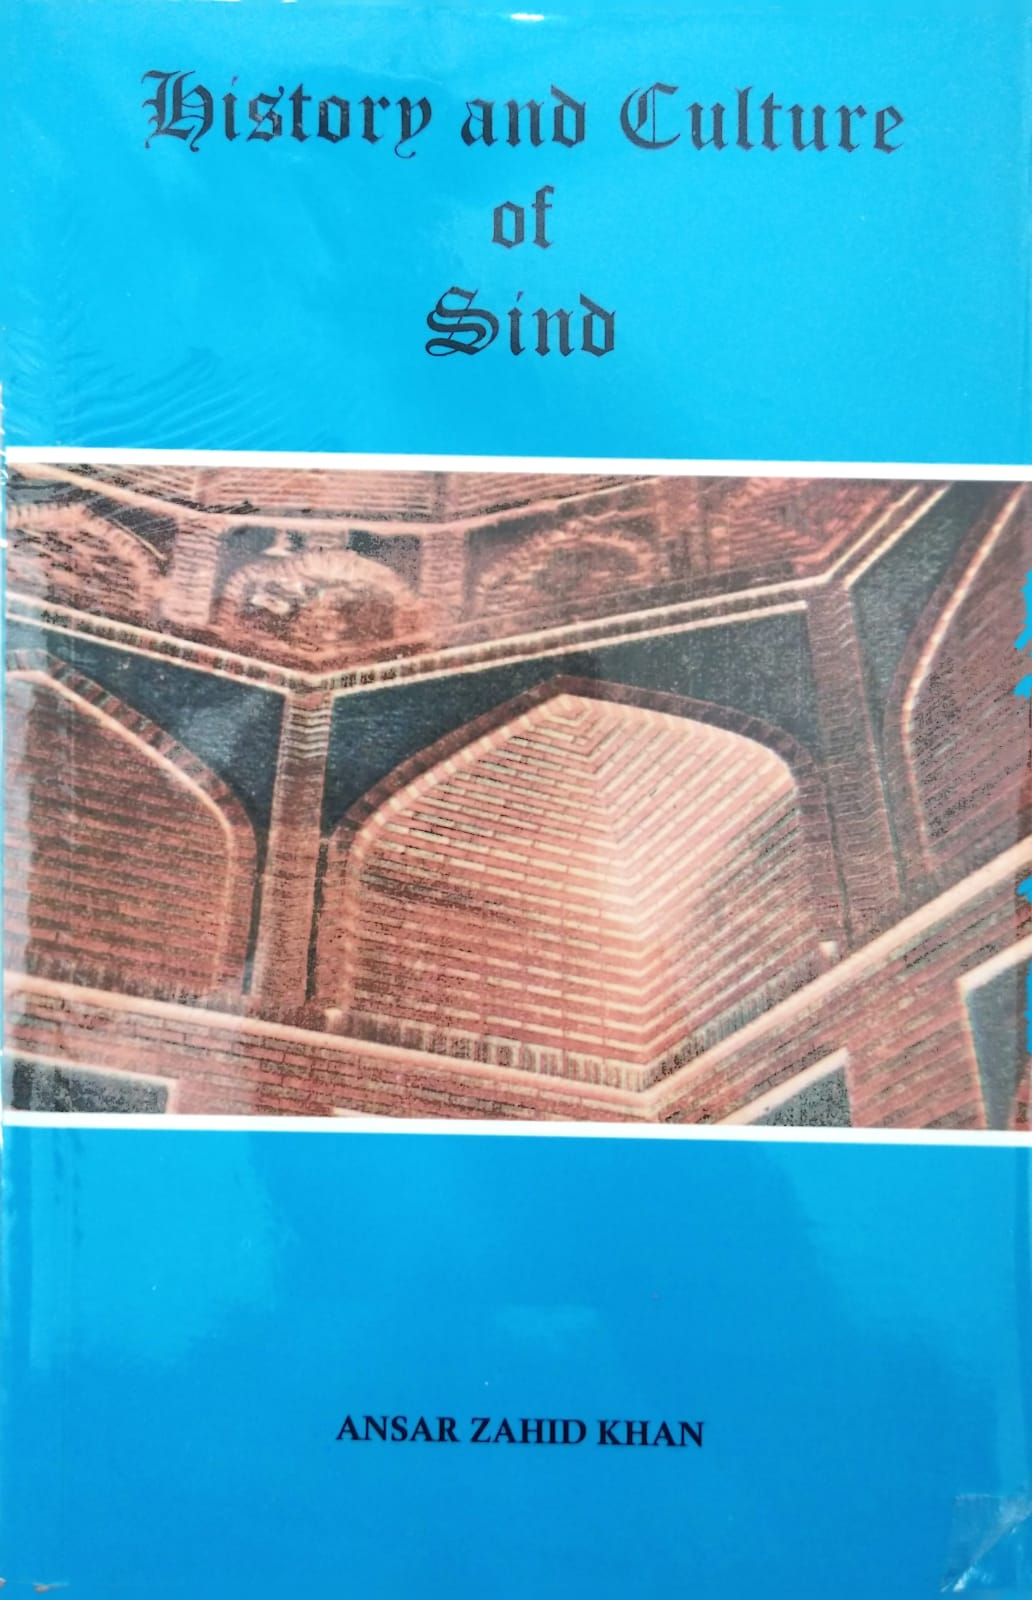 History and Culture of Sindh